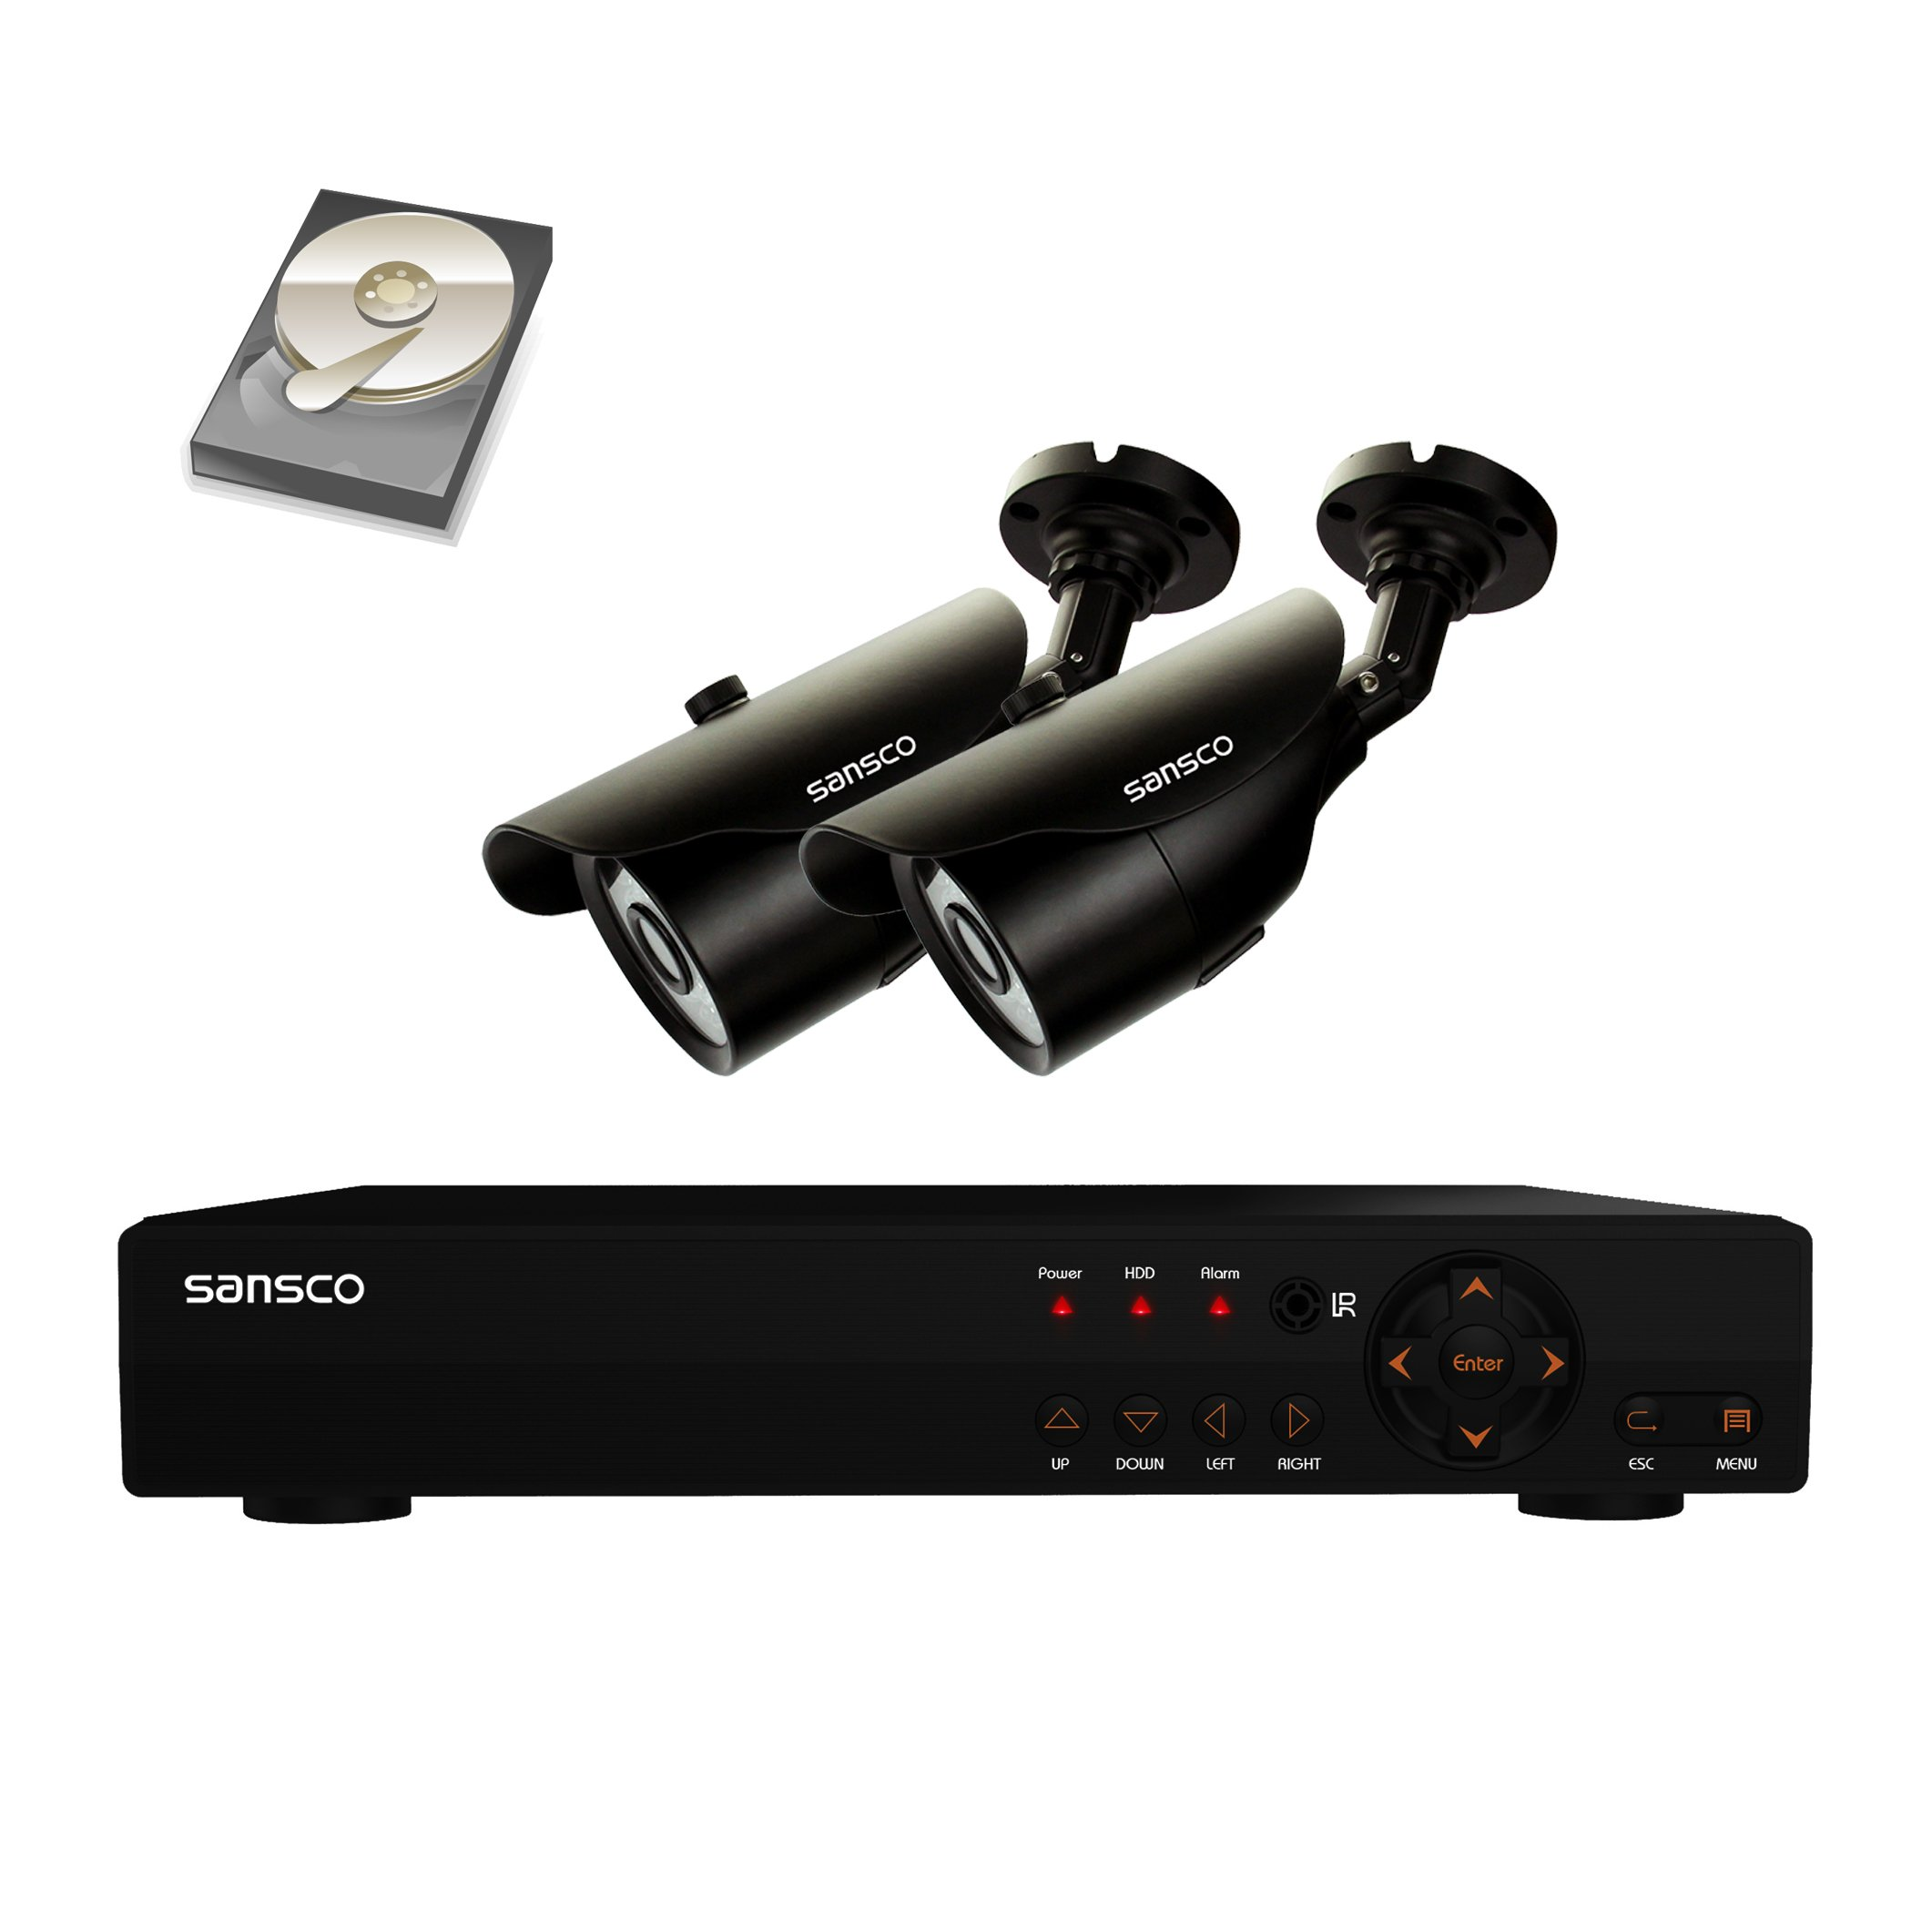 SANSCO 4-Channel 1080N DVR Recorder CCTV Security Systems with 2x Super HD 1.0MP Outdoor Cameras And 1TB Hard Drive (1280x720 Bullet Cam, Rapid USB Storage Backup, Vandal and Water-Proof Body)